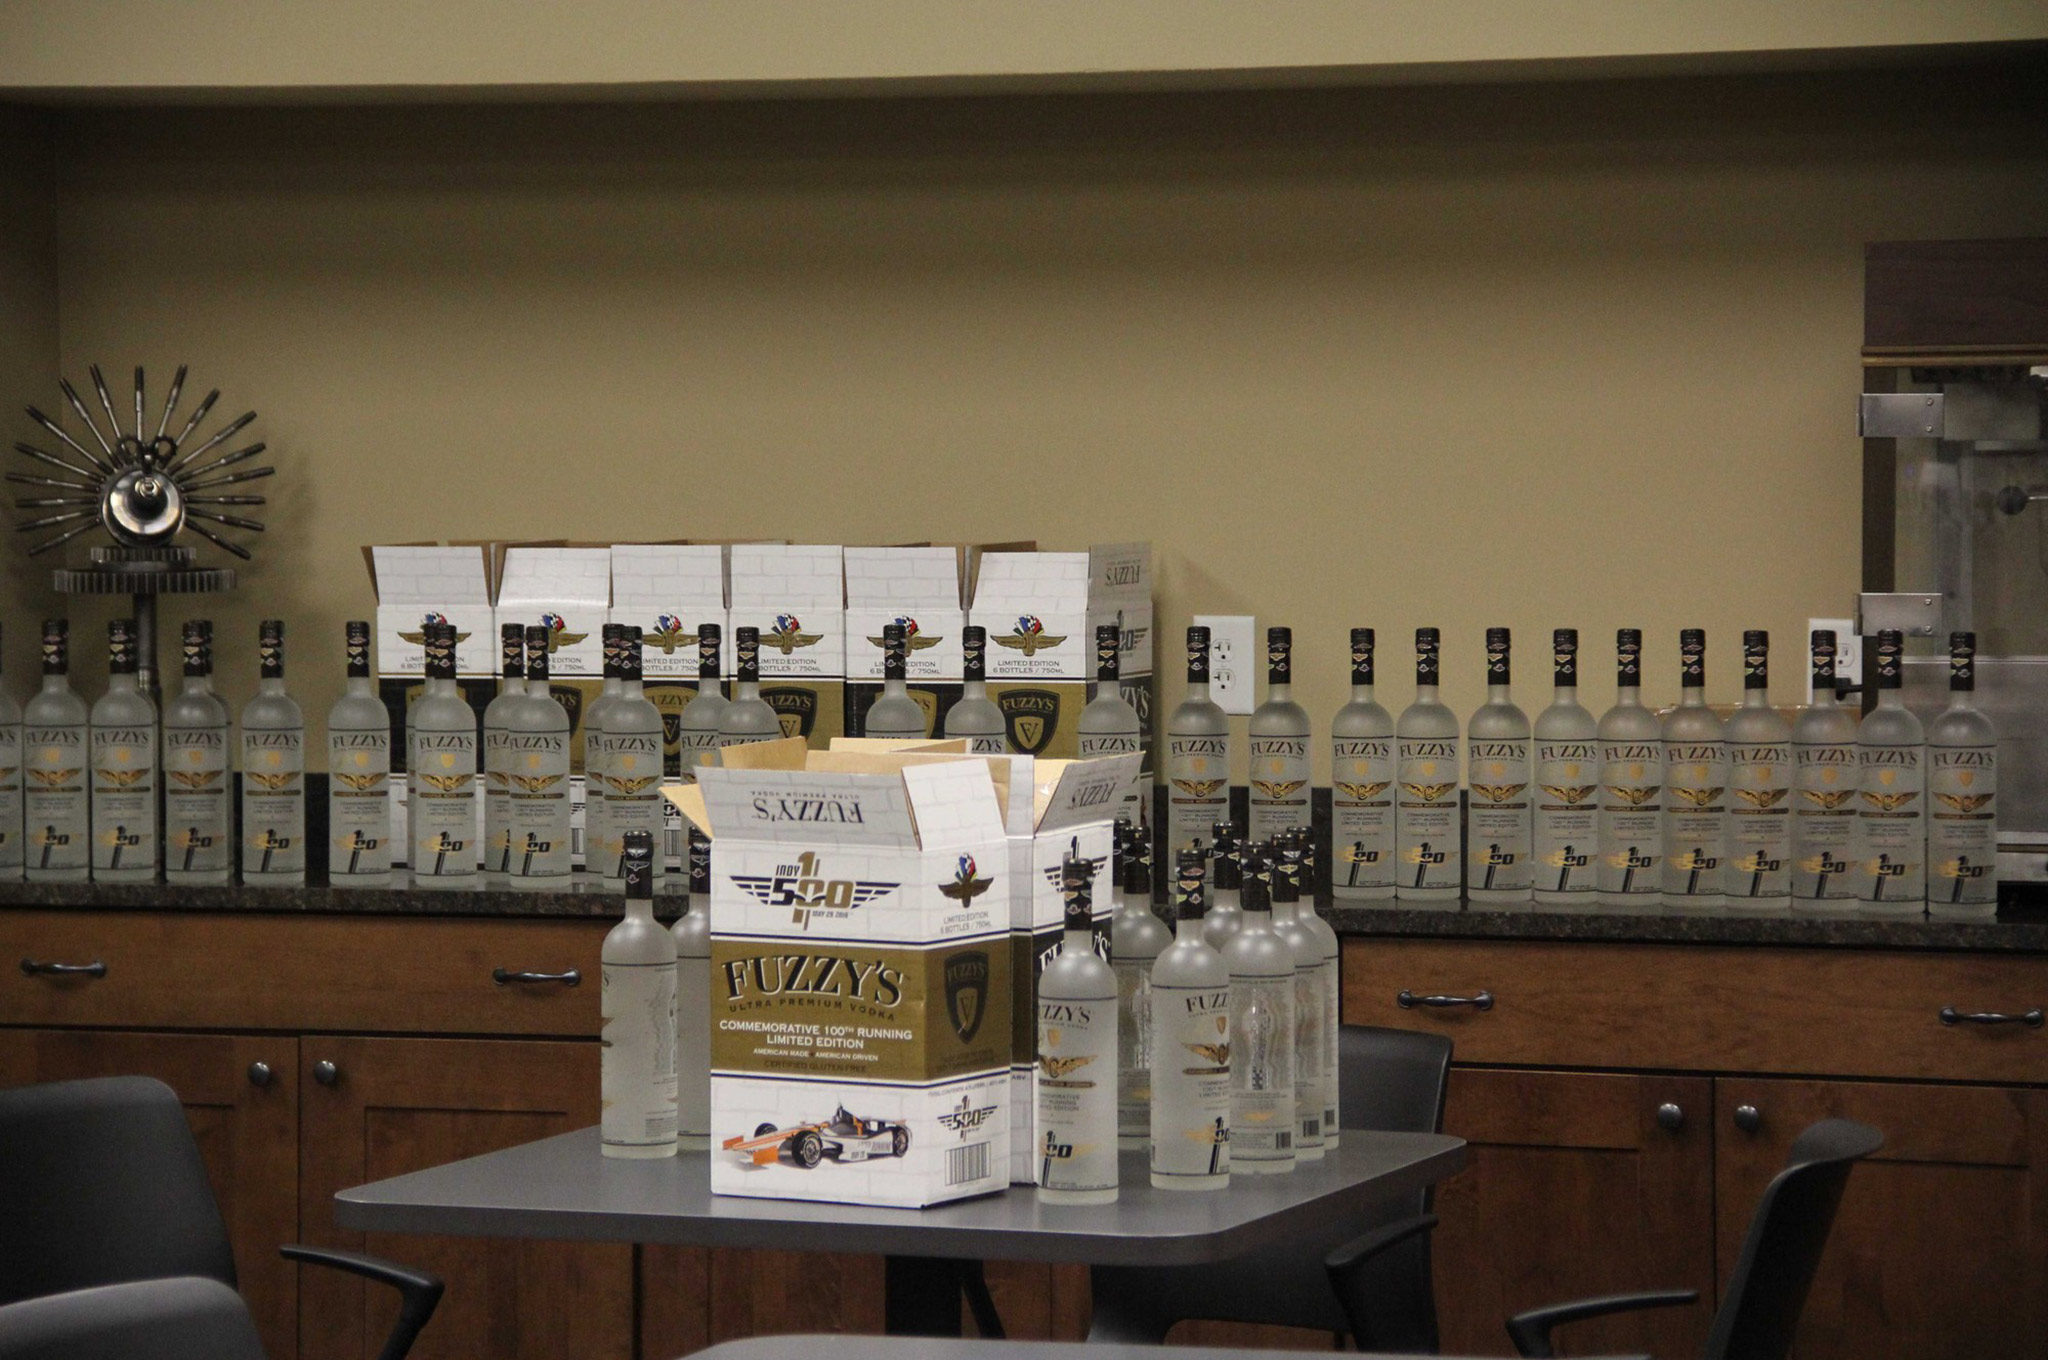 Fuzzy's Vodka is one of Carpenter's main car sponsors, so the lunchroom was stocked in case of a severe snowstorm or tornado were to strand the team in the shop.